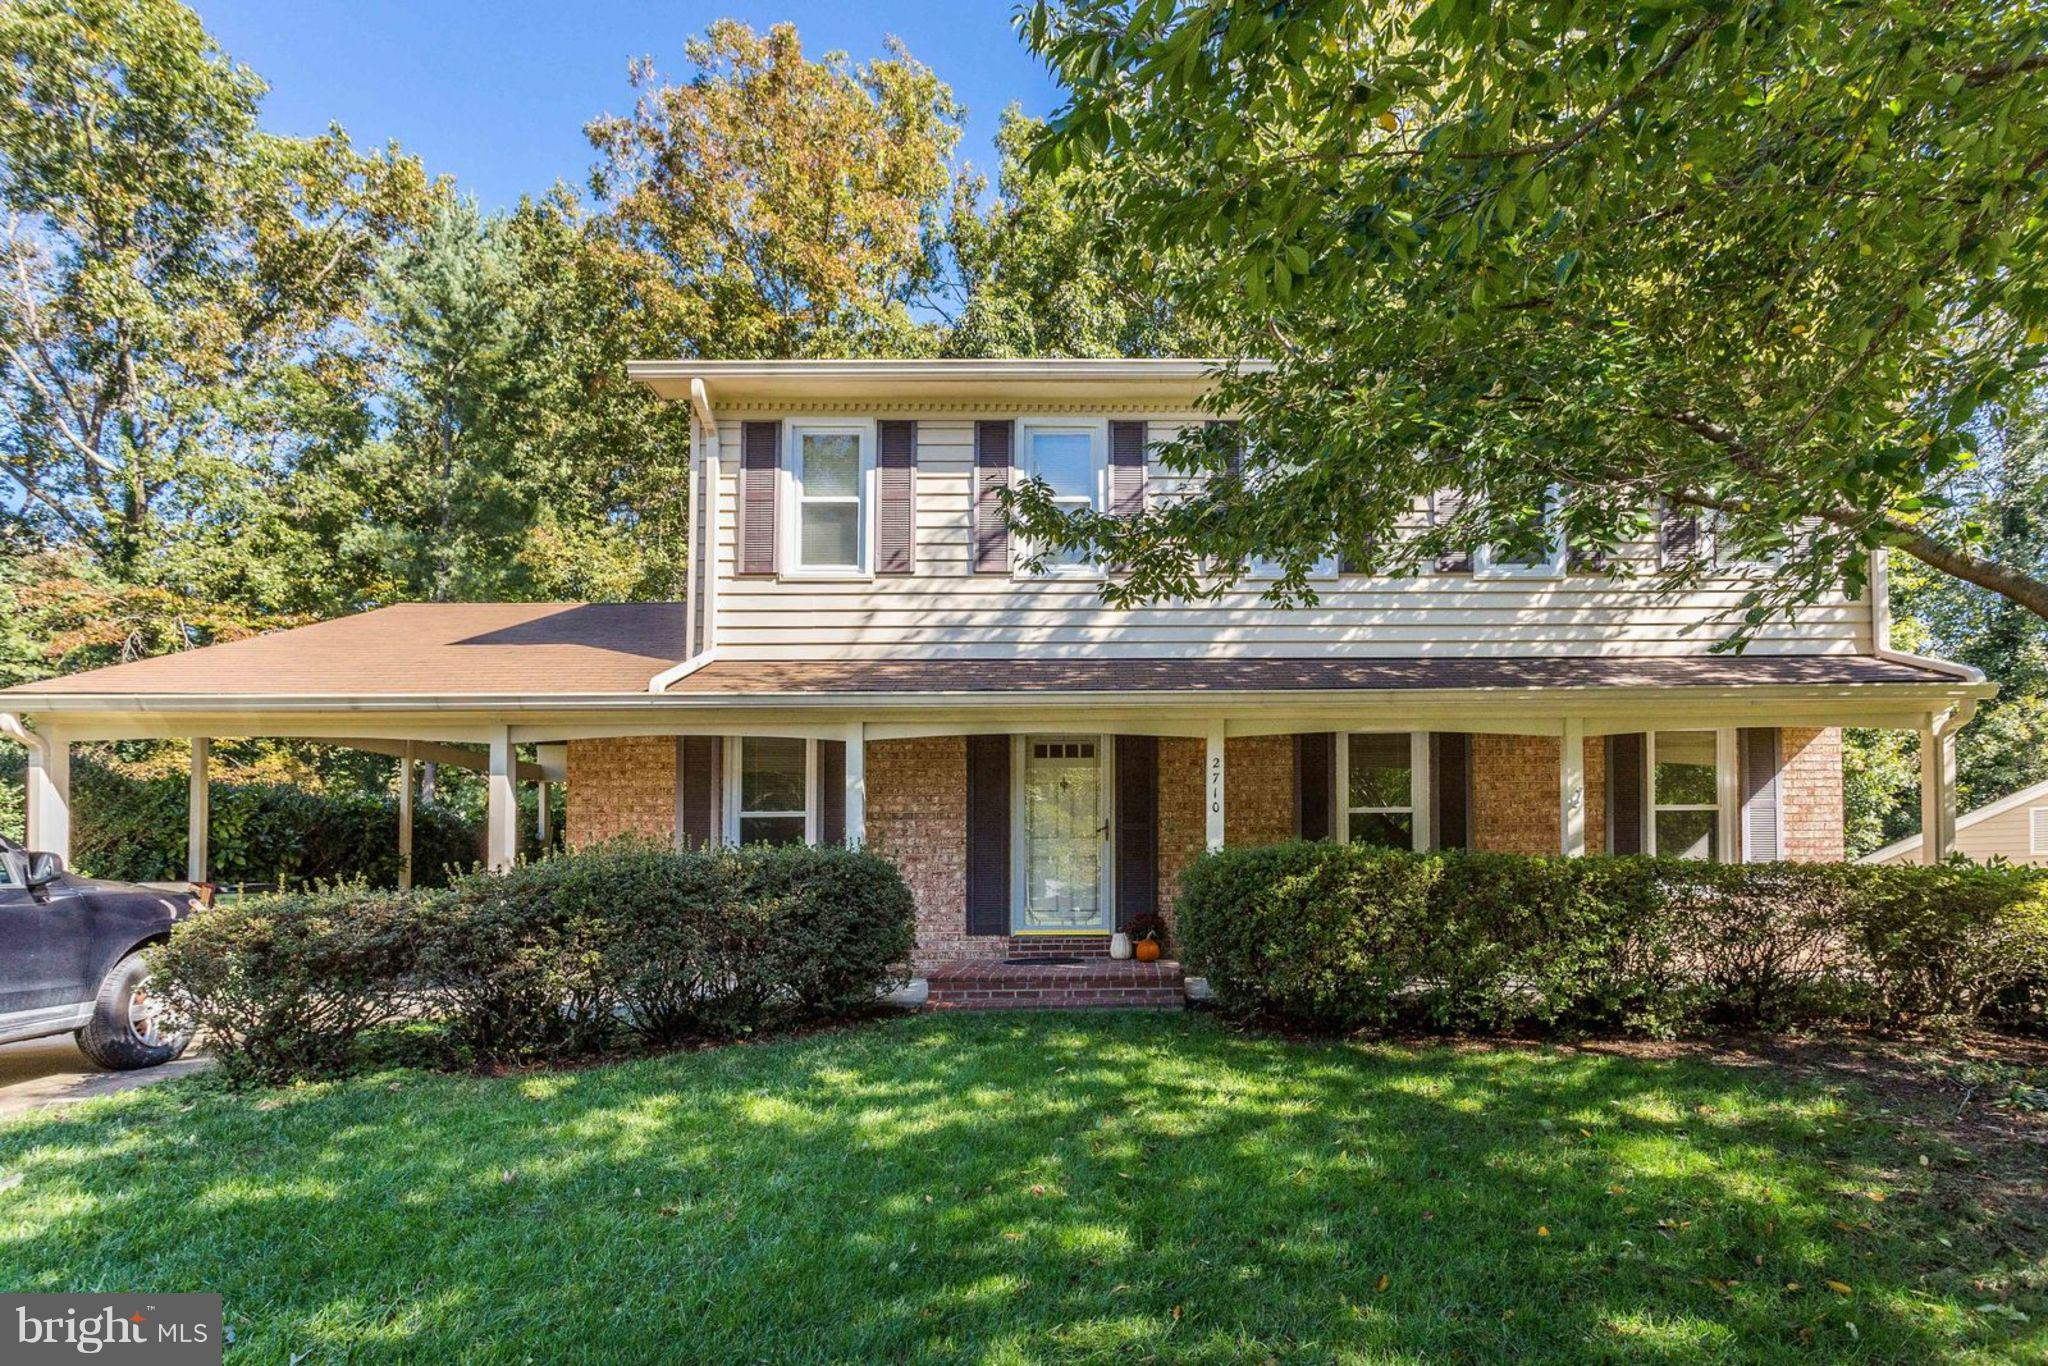 Home in a Cul de Sac in an established neighborhood. Deck that backs to trees. Built in Bookcases in Family Room, Built in Corner China Cabinets in Formal Dining Room, Granite Countertops, Stainless Steel Appliances, Freshly Painted,  Newer Roof.  Carport and Paved Driveway